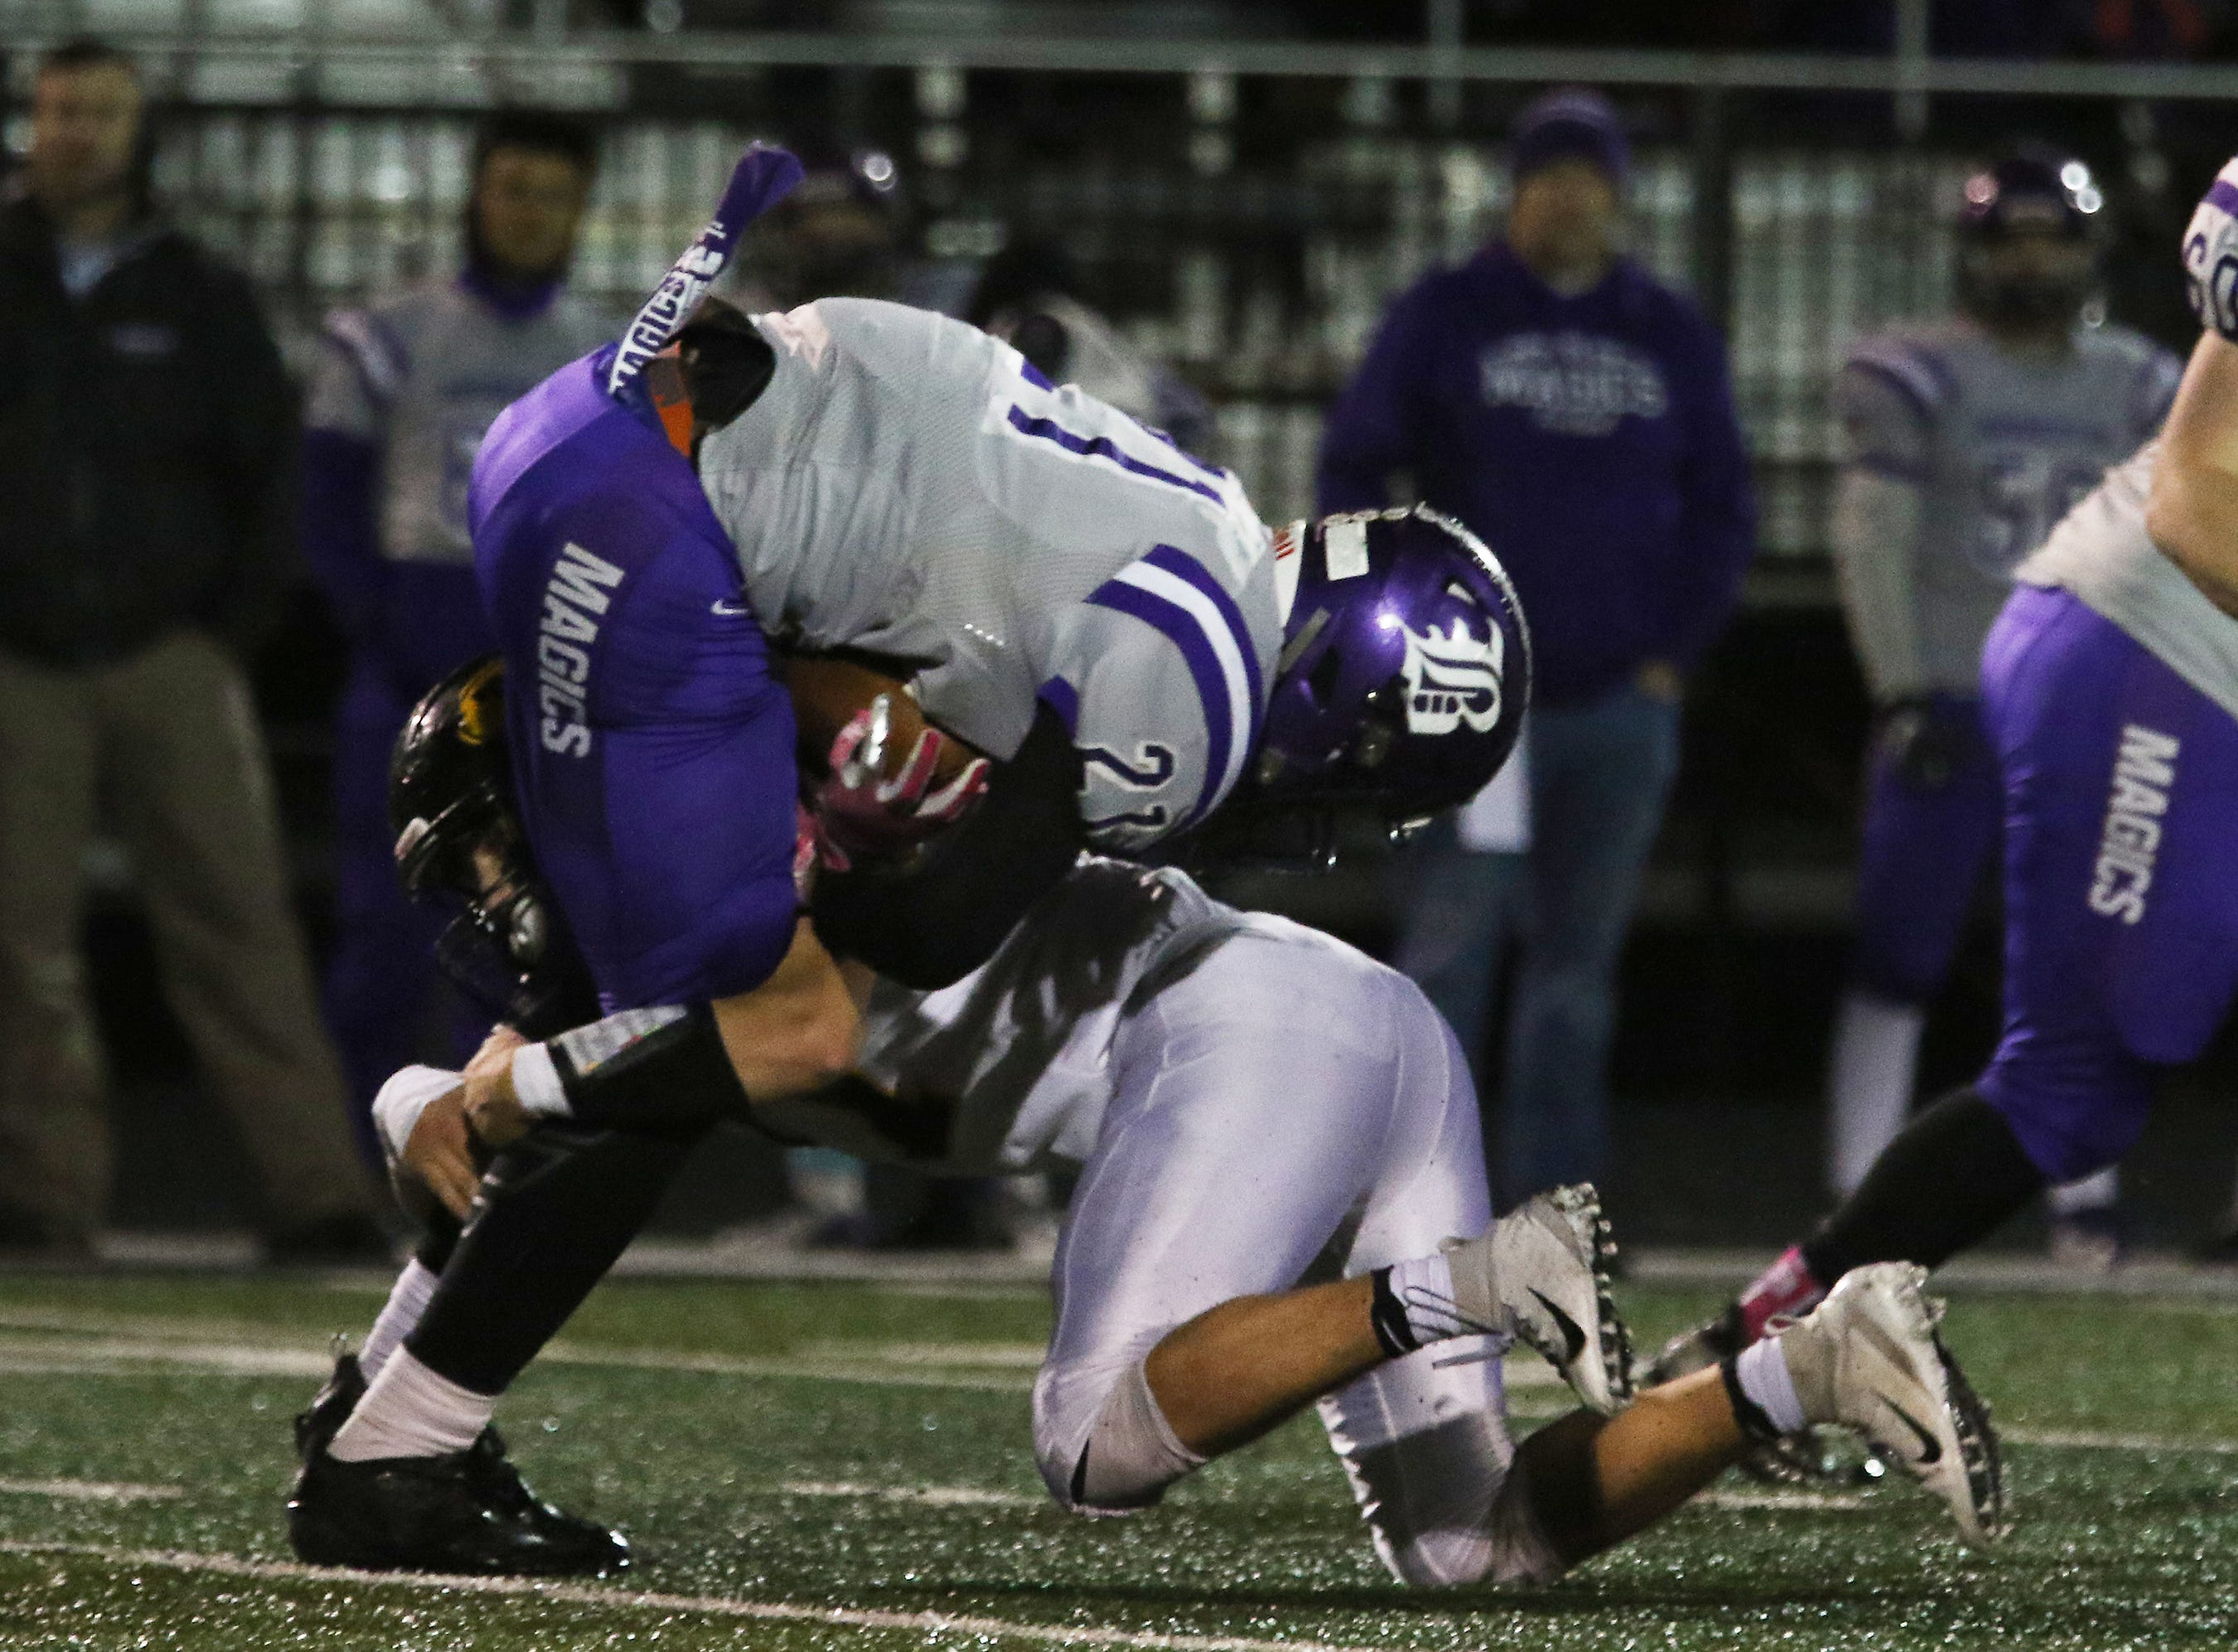 A Tri-Valley defender takes down Barberton's Kyree Young.